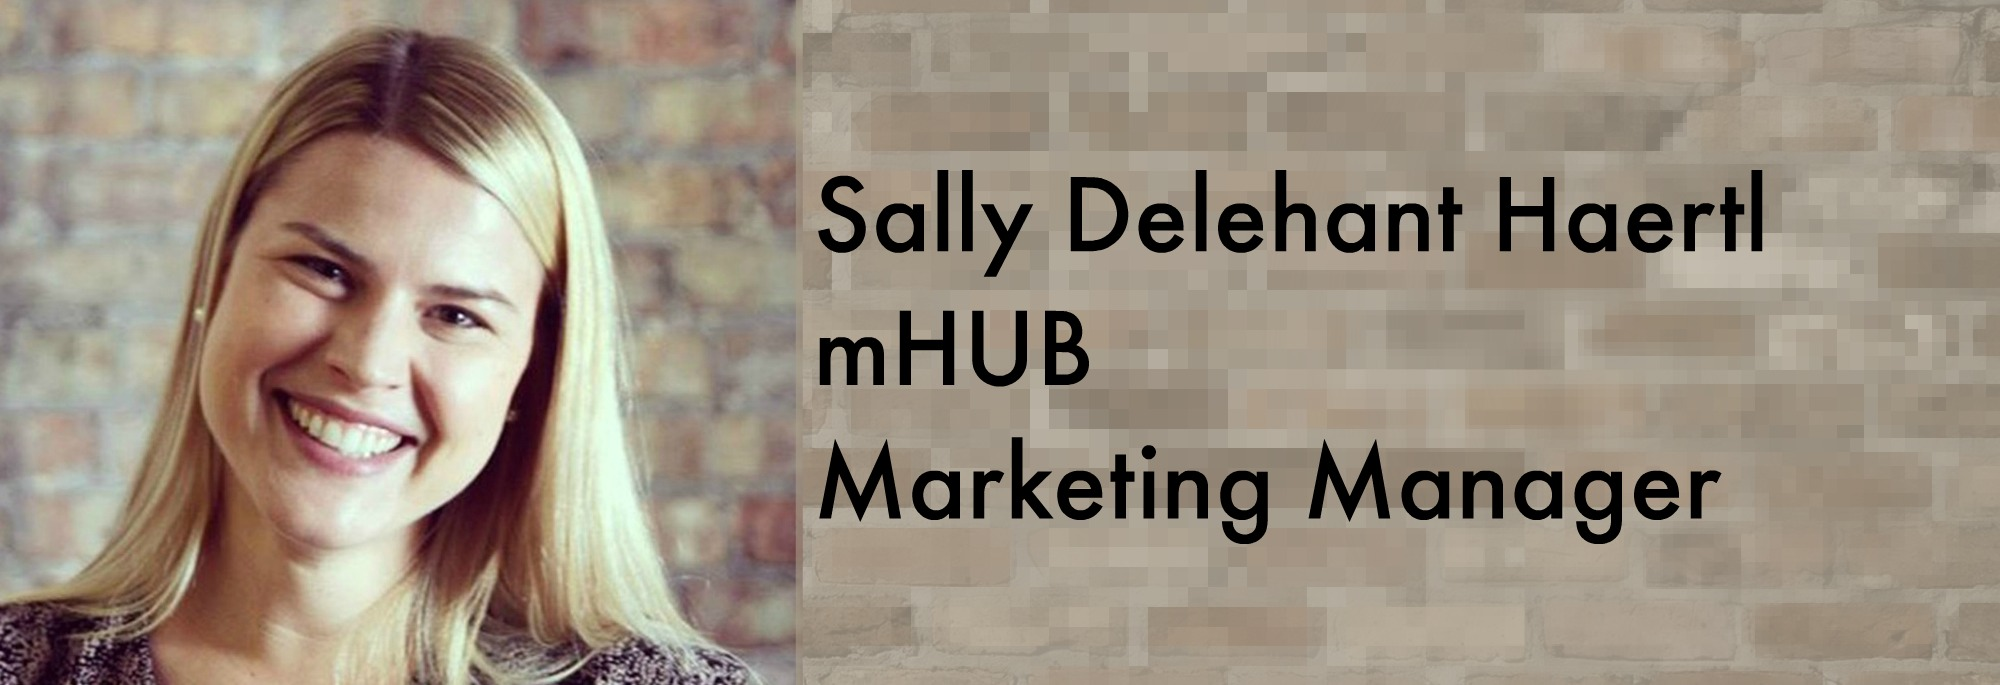 mHUB Marketing Manager Sally Delehant Haertl